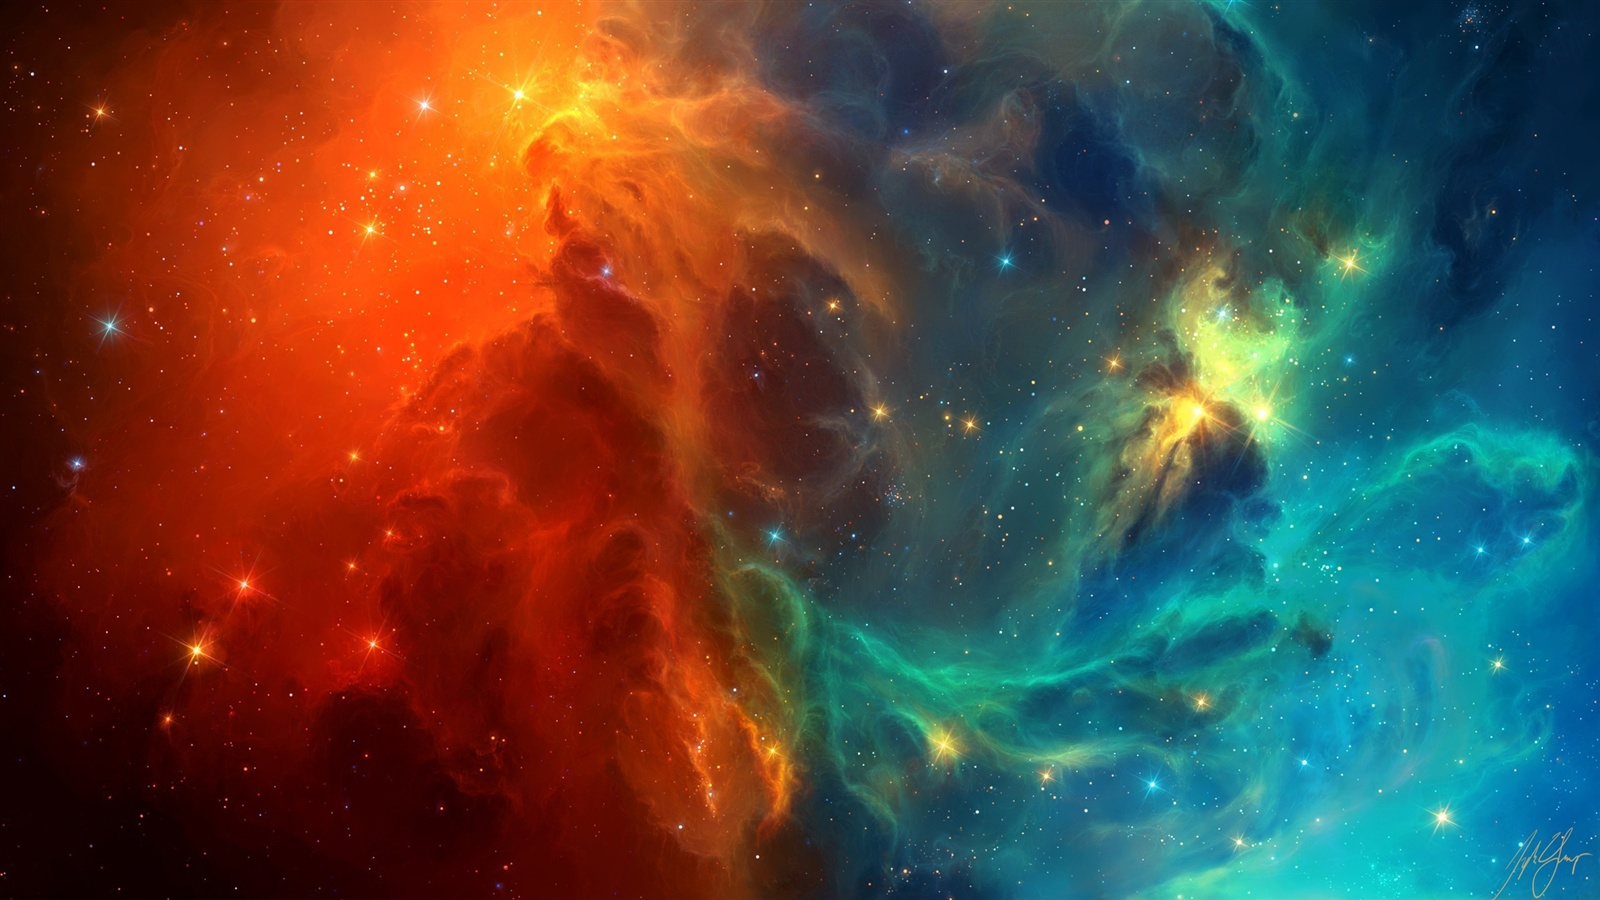 galaxy nebula space backgrounds - photo #40